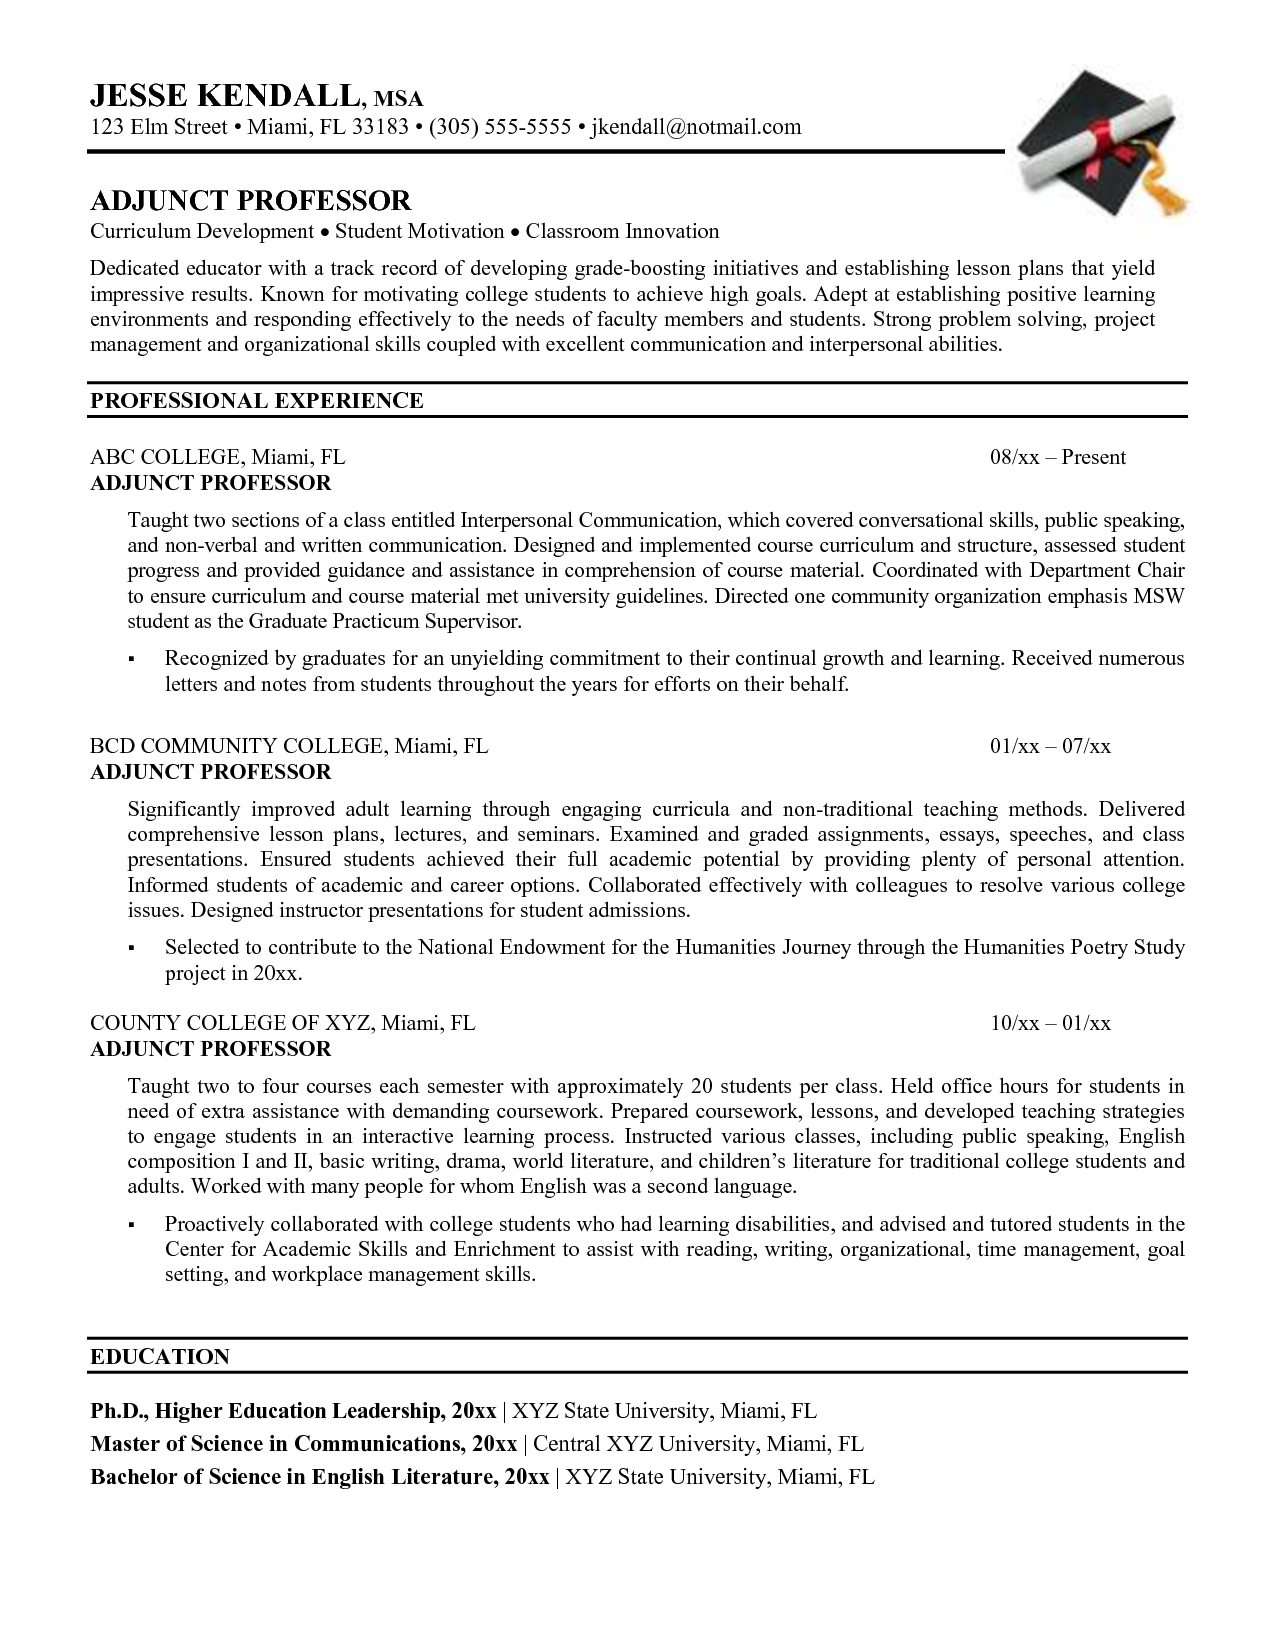 Academic Resume Sample Sample Resume For Faculty Position Engineering Adjunct Professor